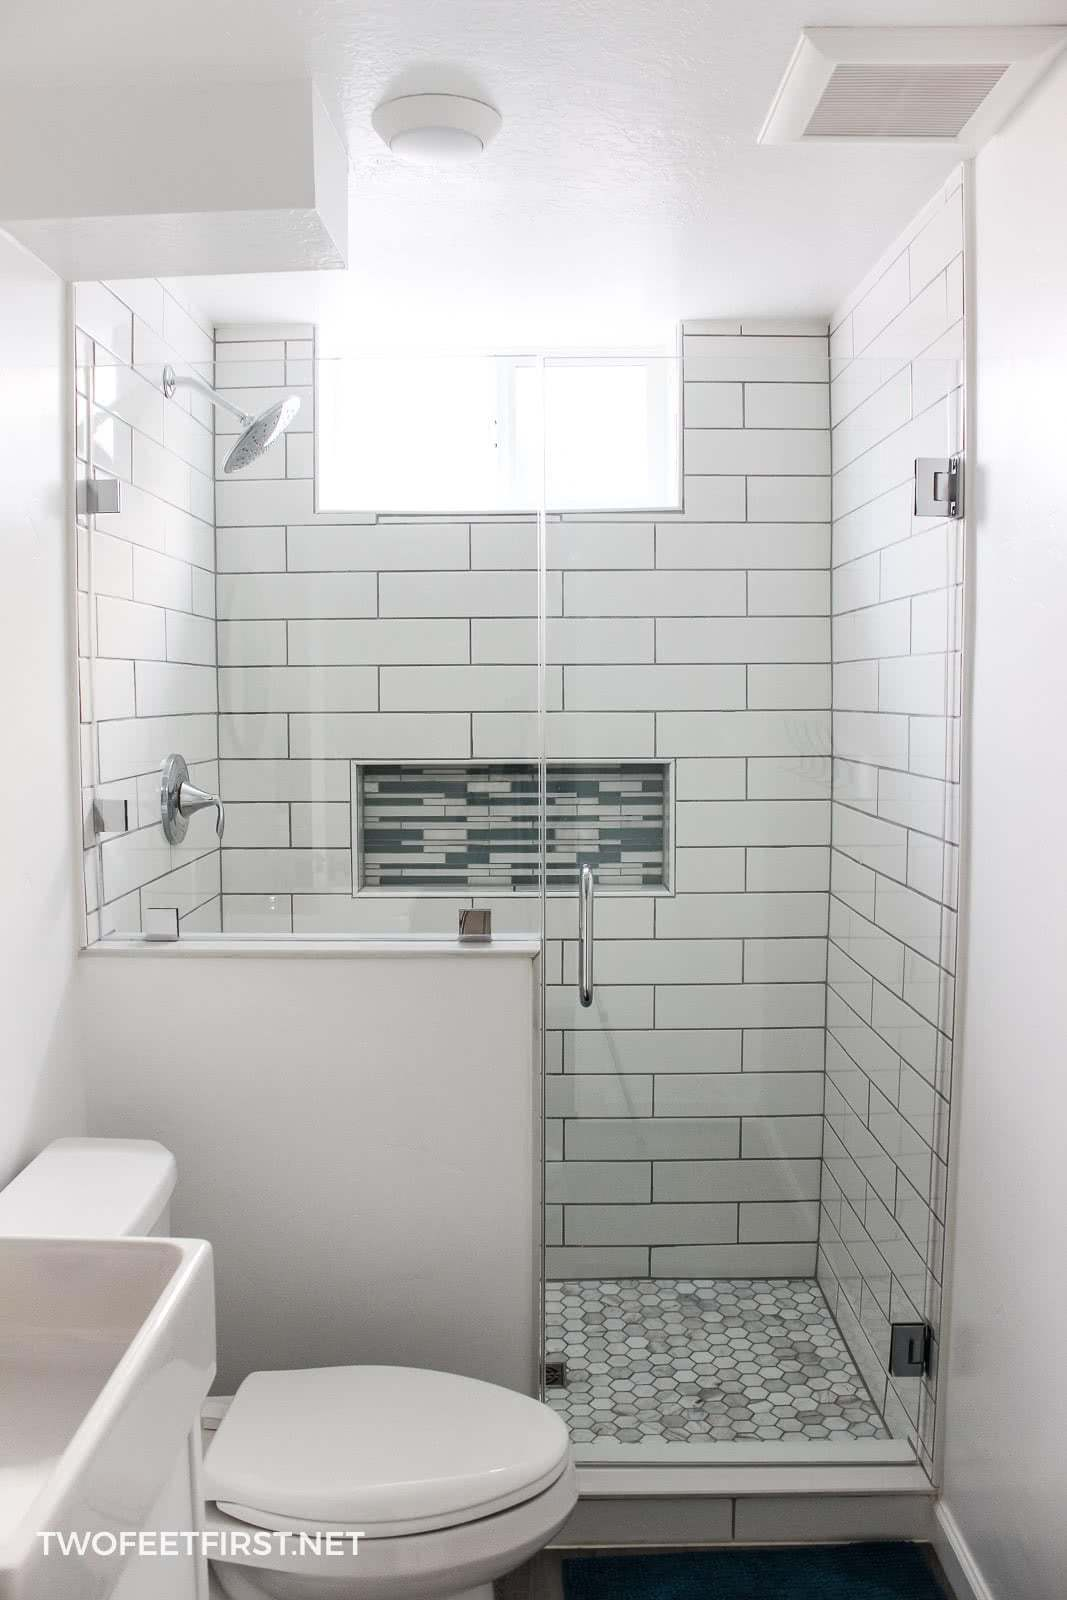 My Experience Tiling A Shower For The First Time